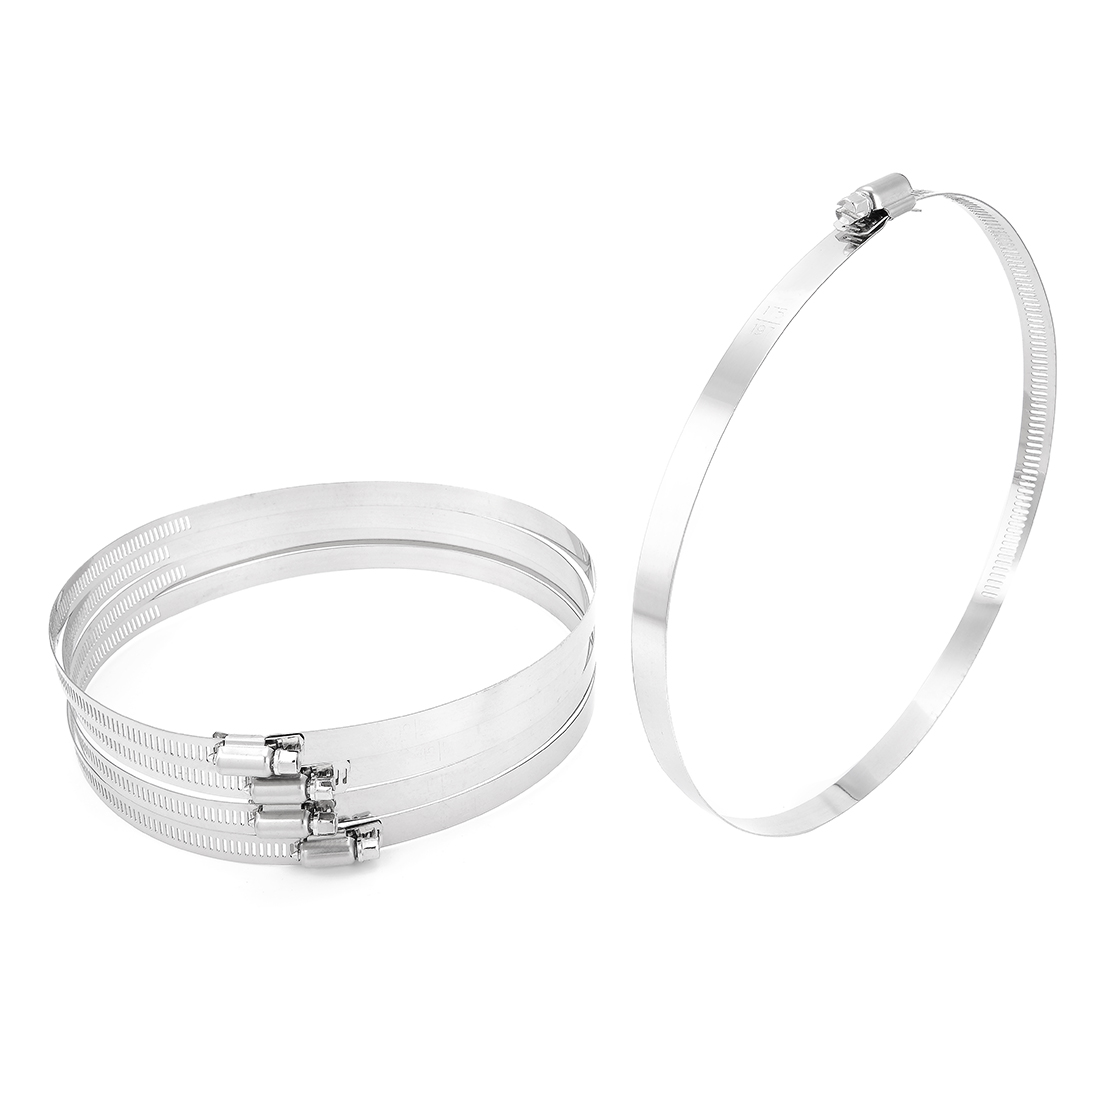 6.89-inch to 7.76-inch Clamping Range 201 Stainless Steel American Worm Gear Hose Clamp 5pcs